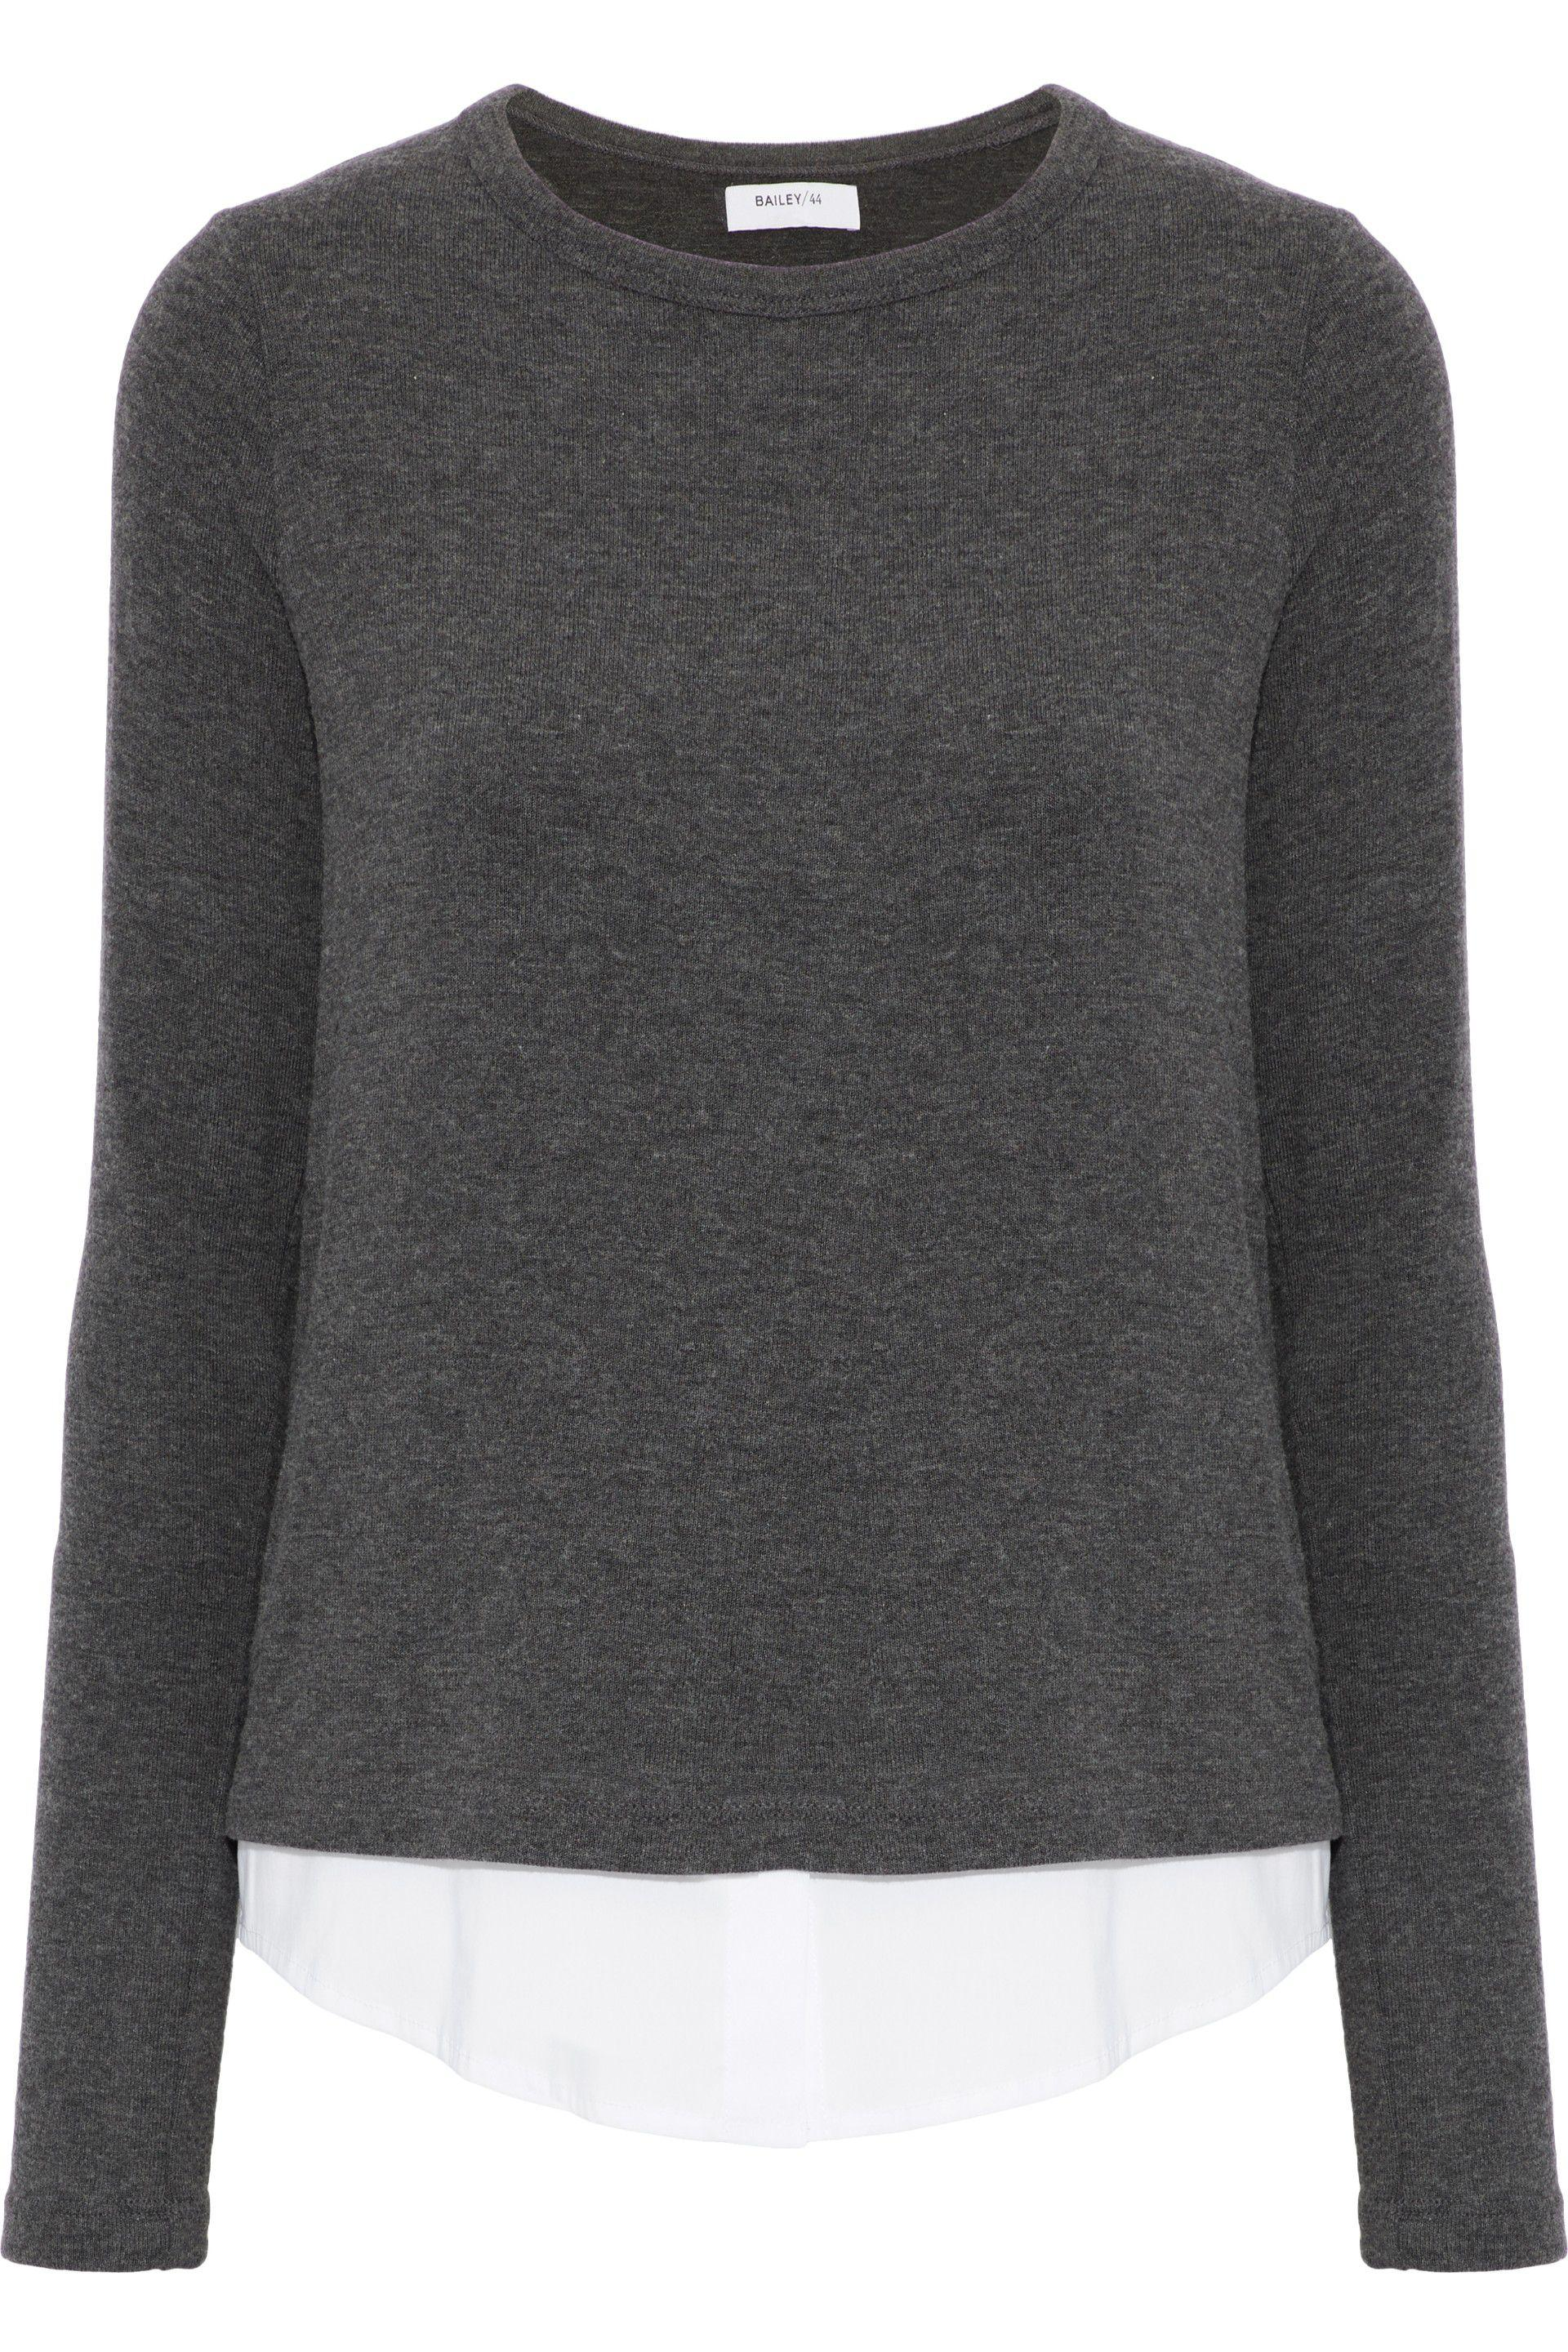 Outlet Best Wholesale Bailey 44 Woman Poplin-paneled Knitted Top Anthracite Size M Bailey 44 Clearance Best Place Huge Surprise Online Low Cost Cheap Price PCArDteSj2